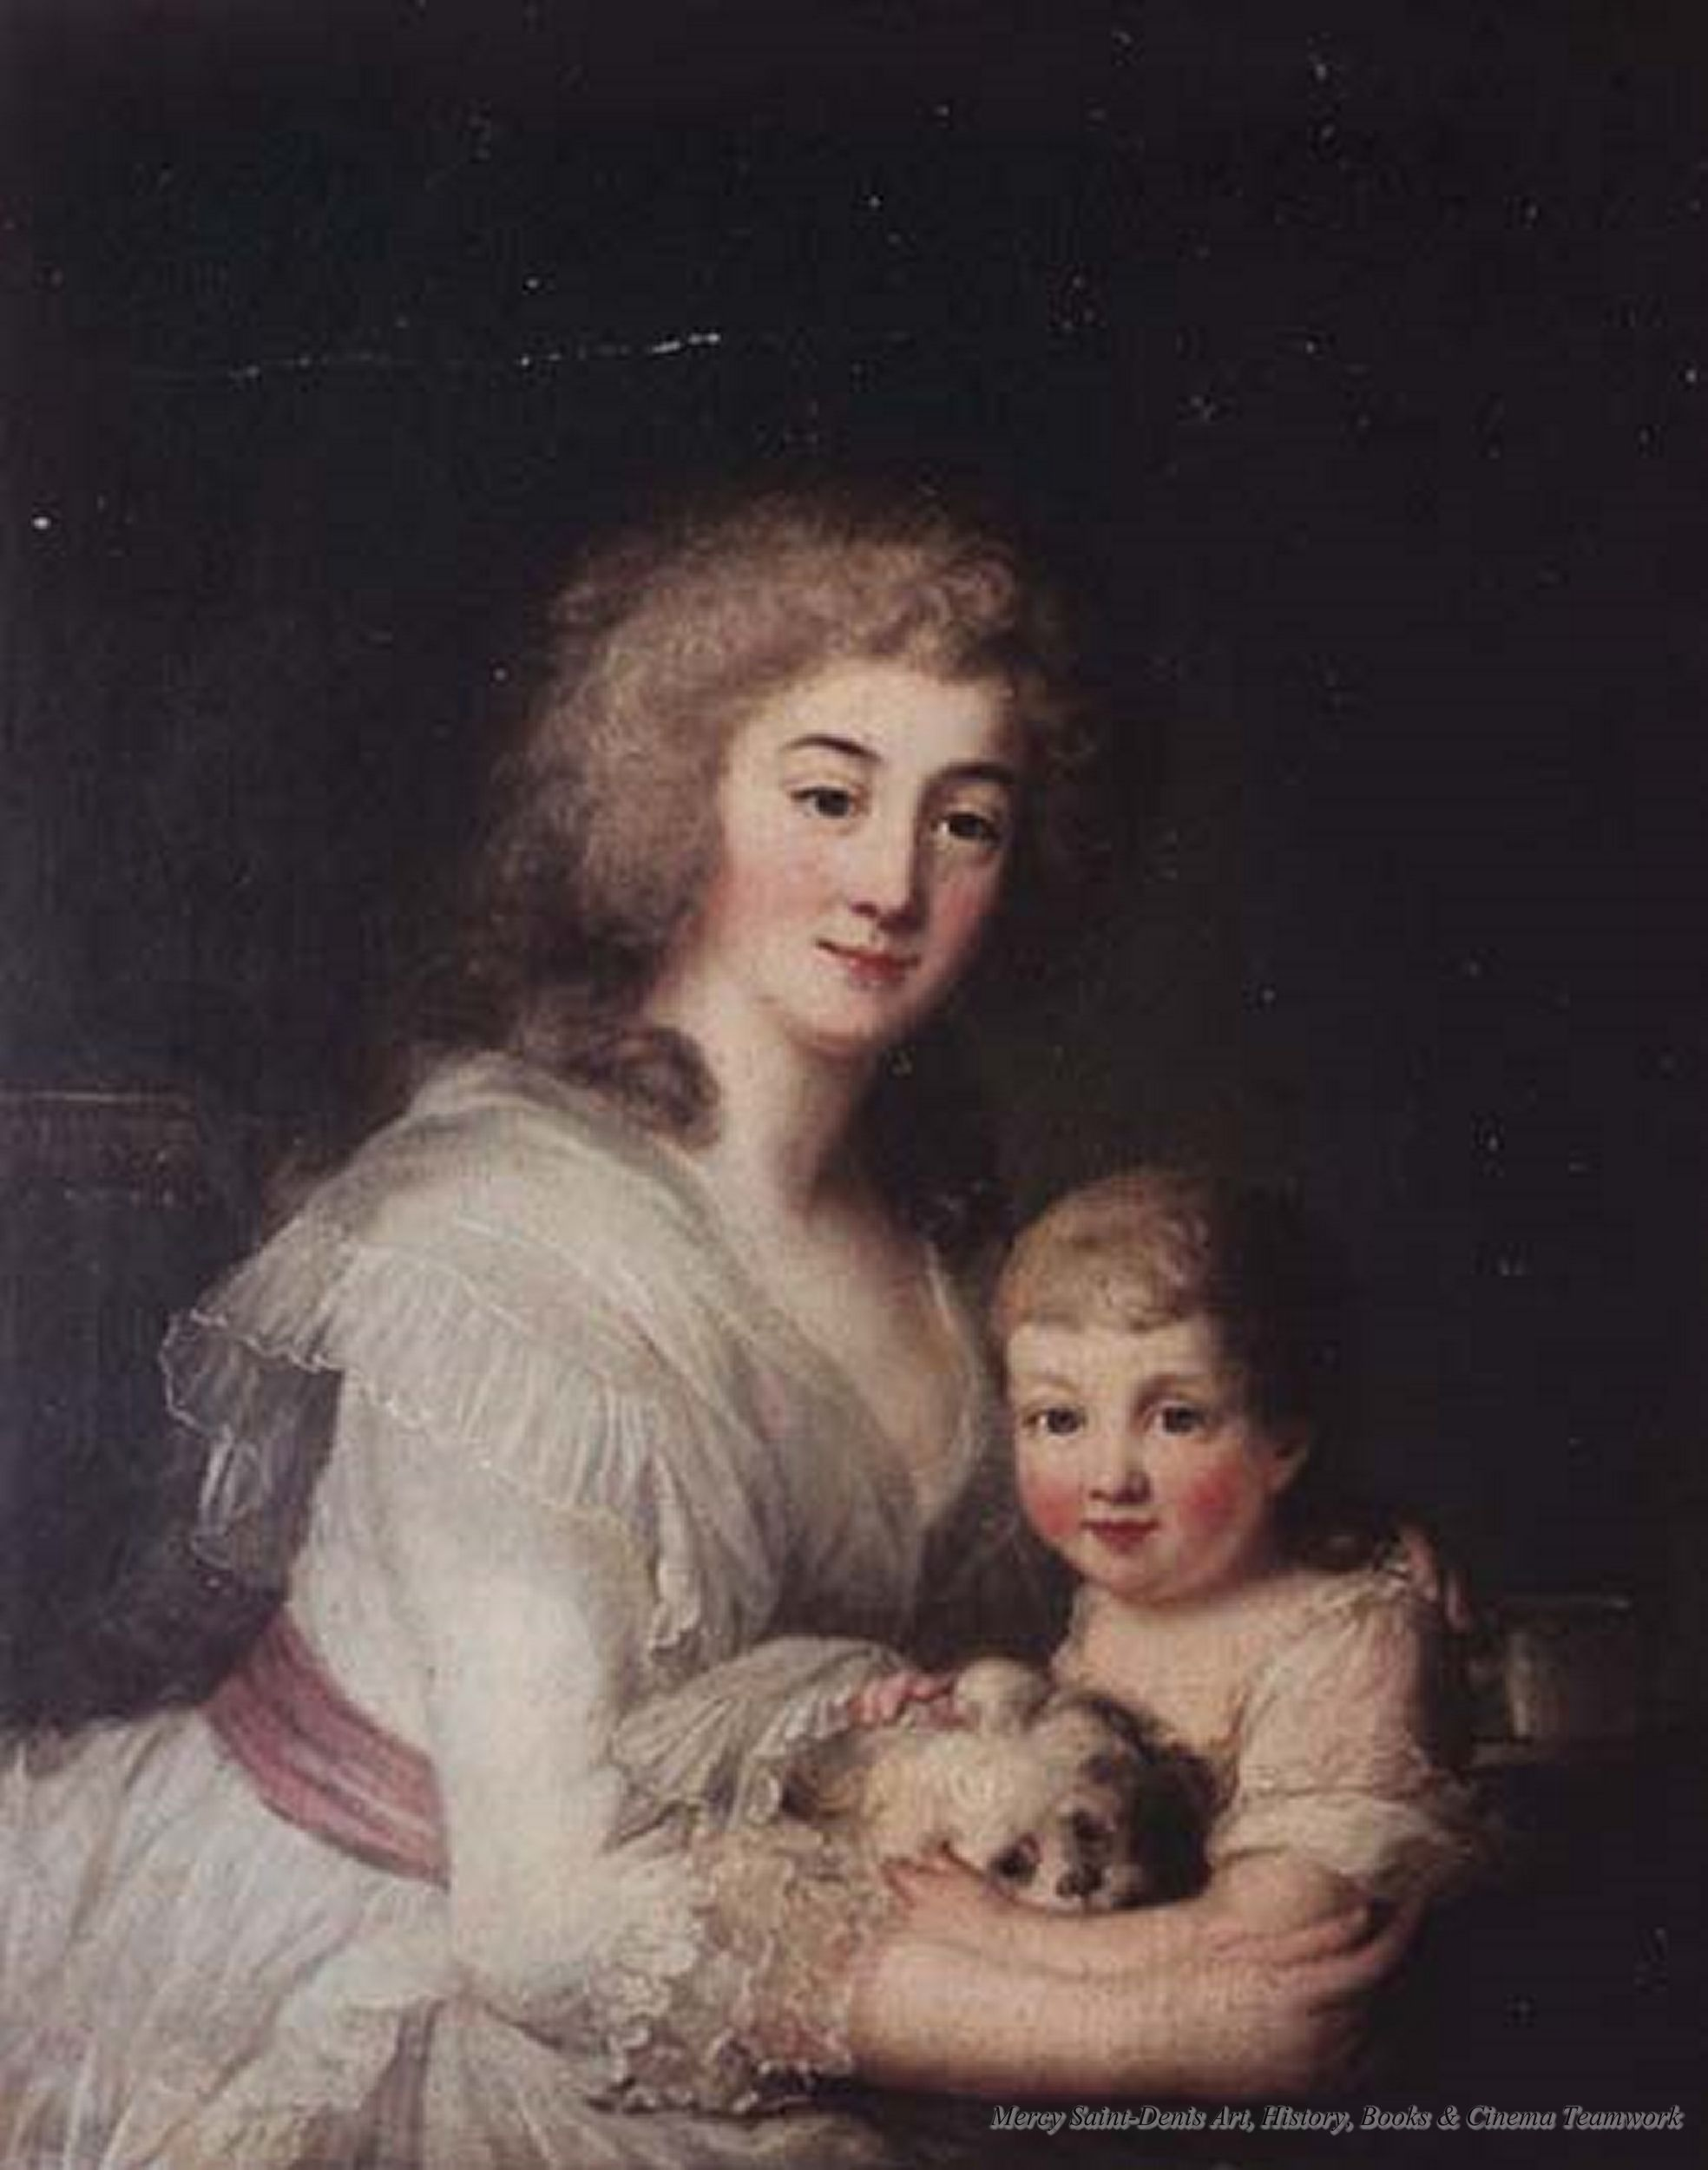 The Dauphin Louis-Charles and his Governess Mme de Tourzel - ca. 1788. |  Marie antoinette, Beauty art, Letting go of him